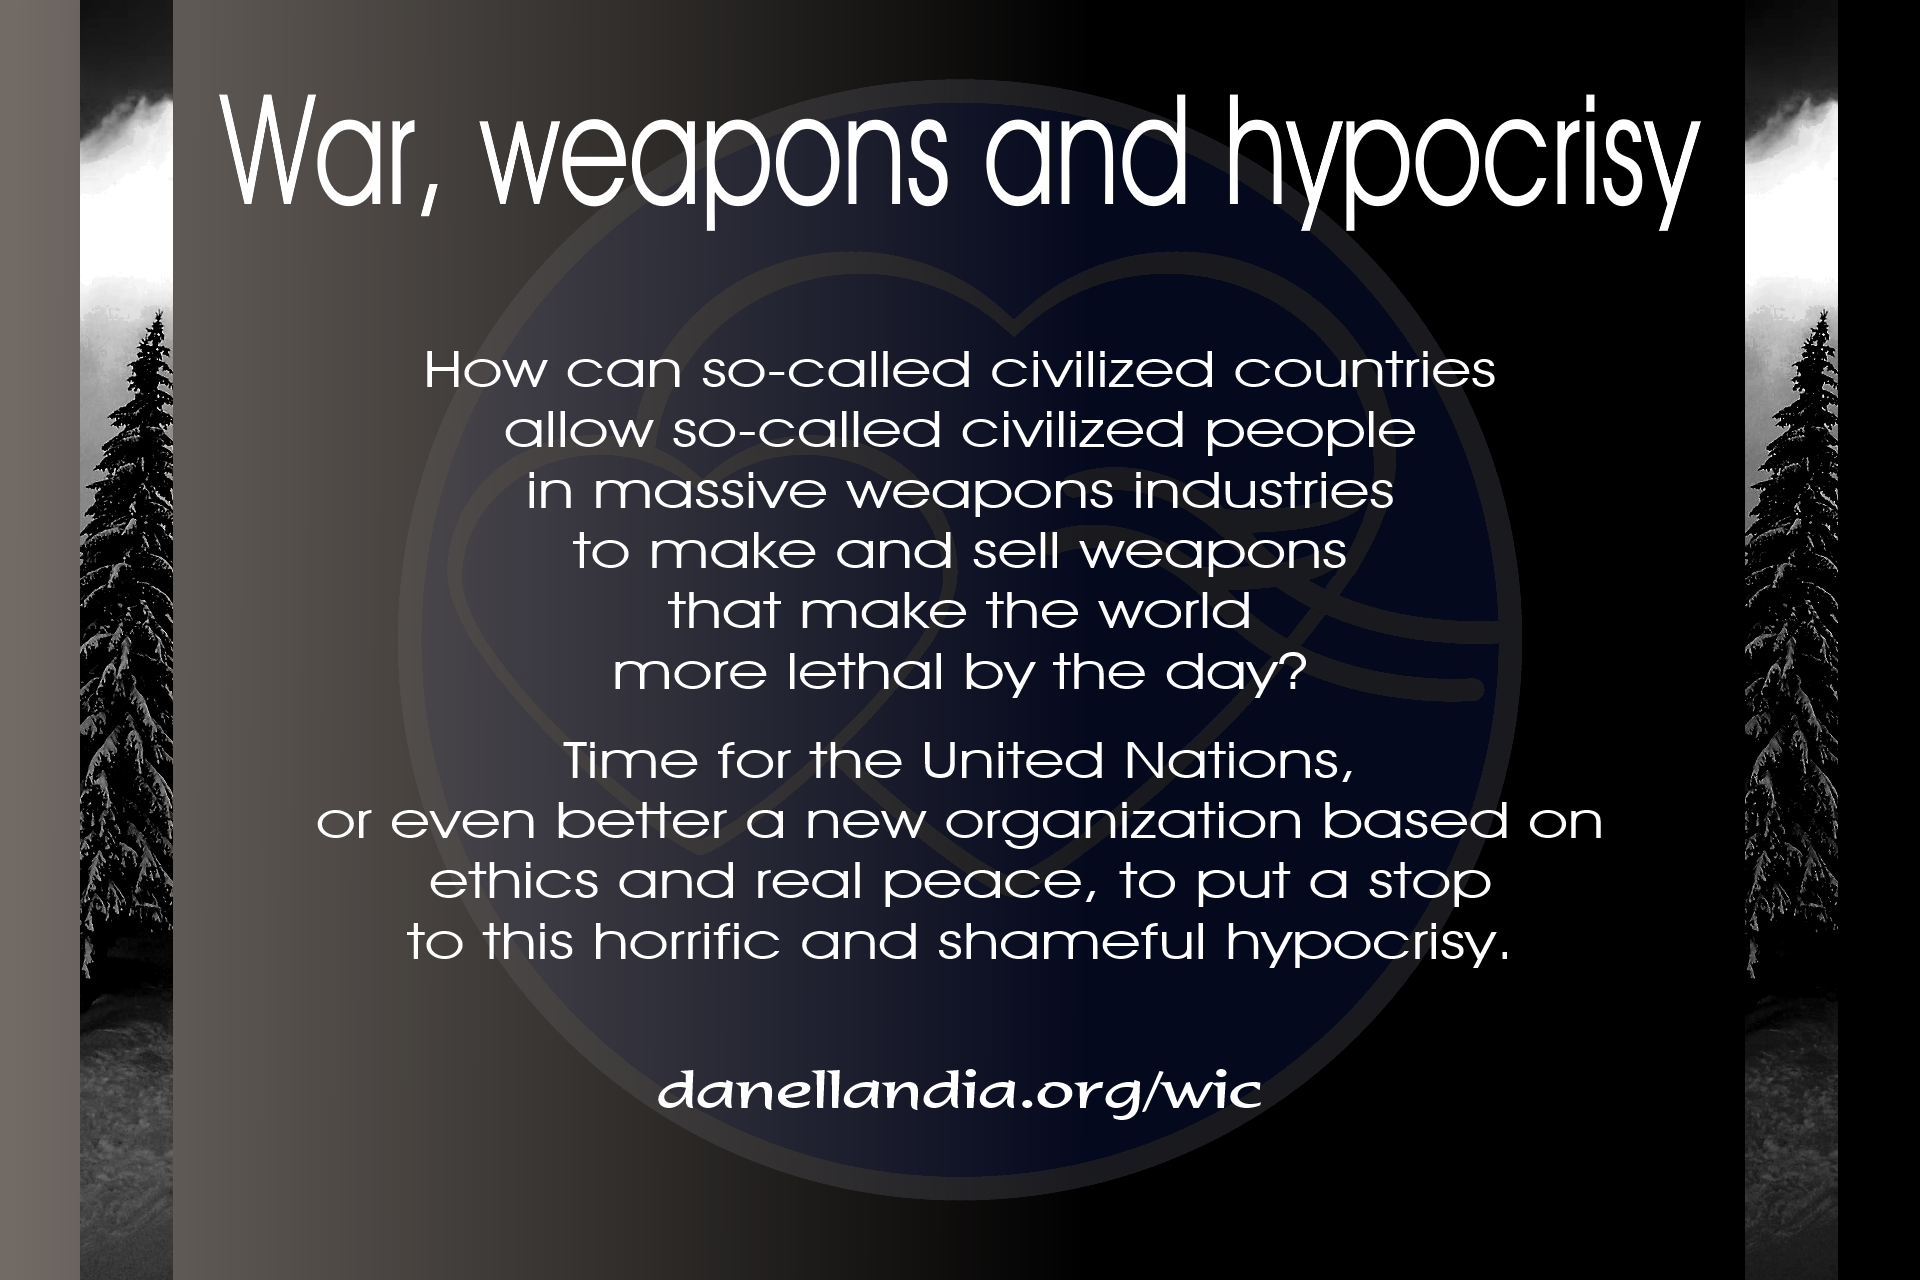 War, weapons and hypocrisy